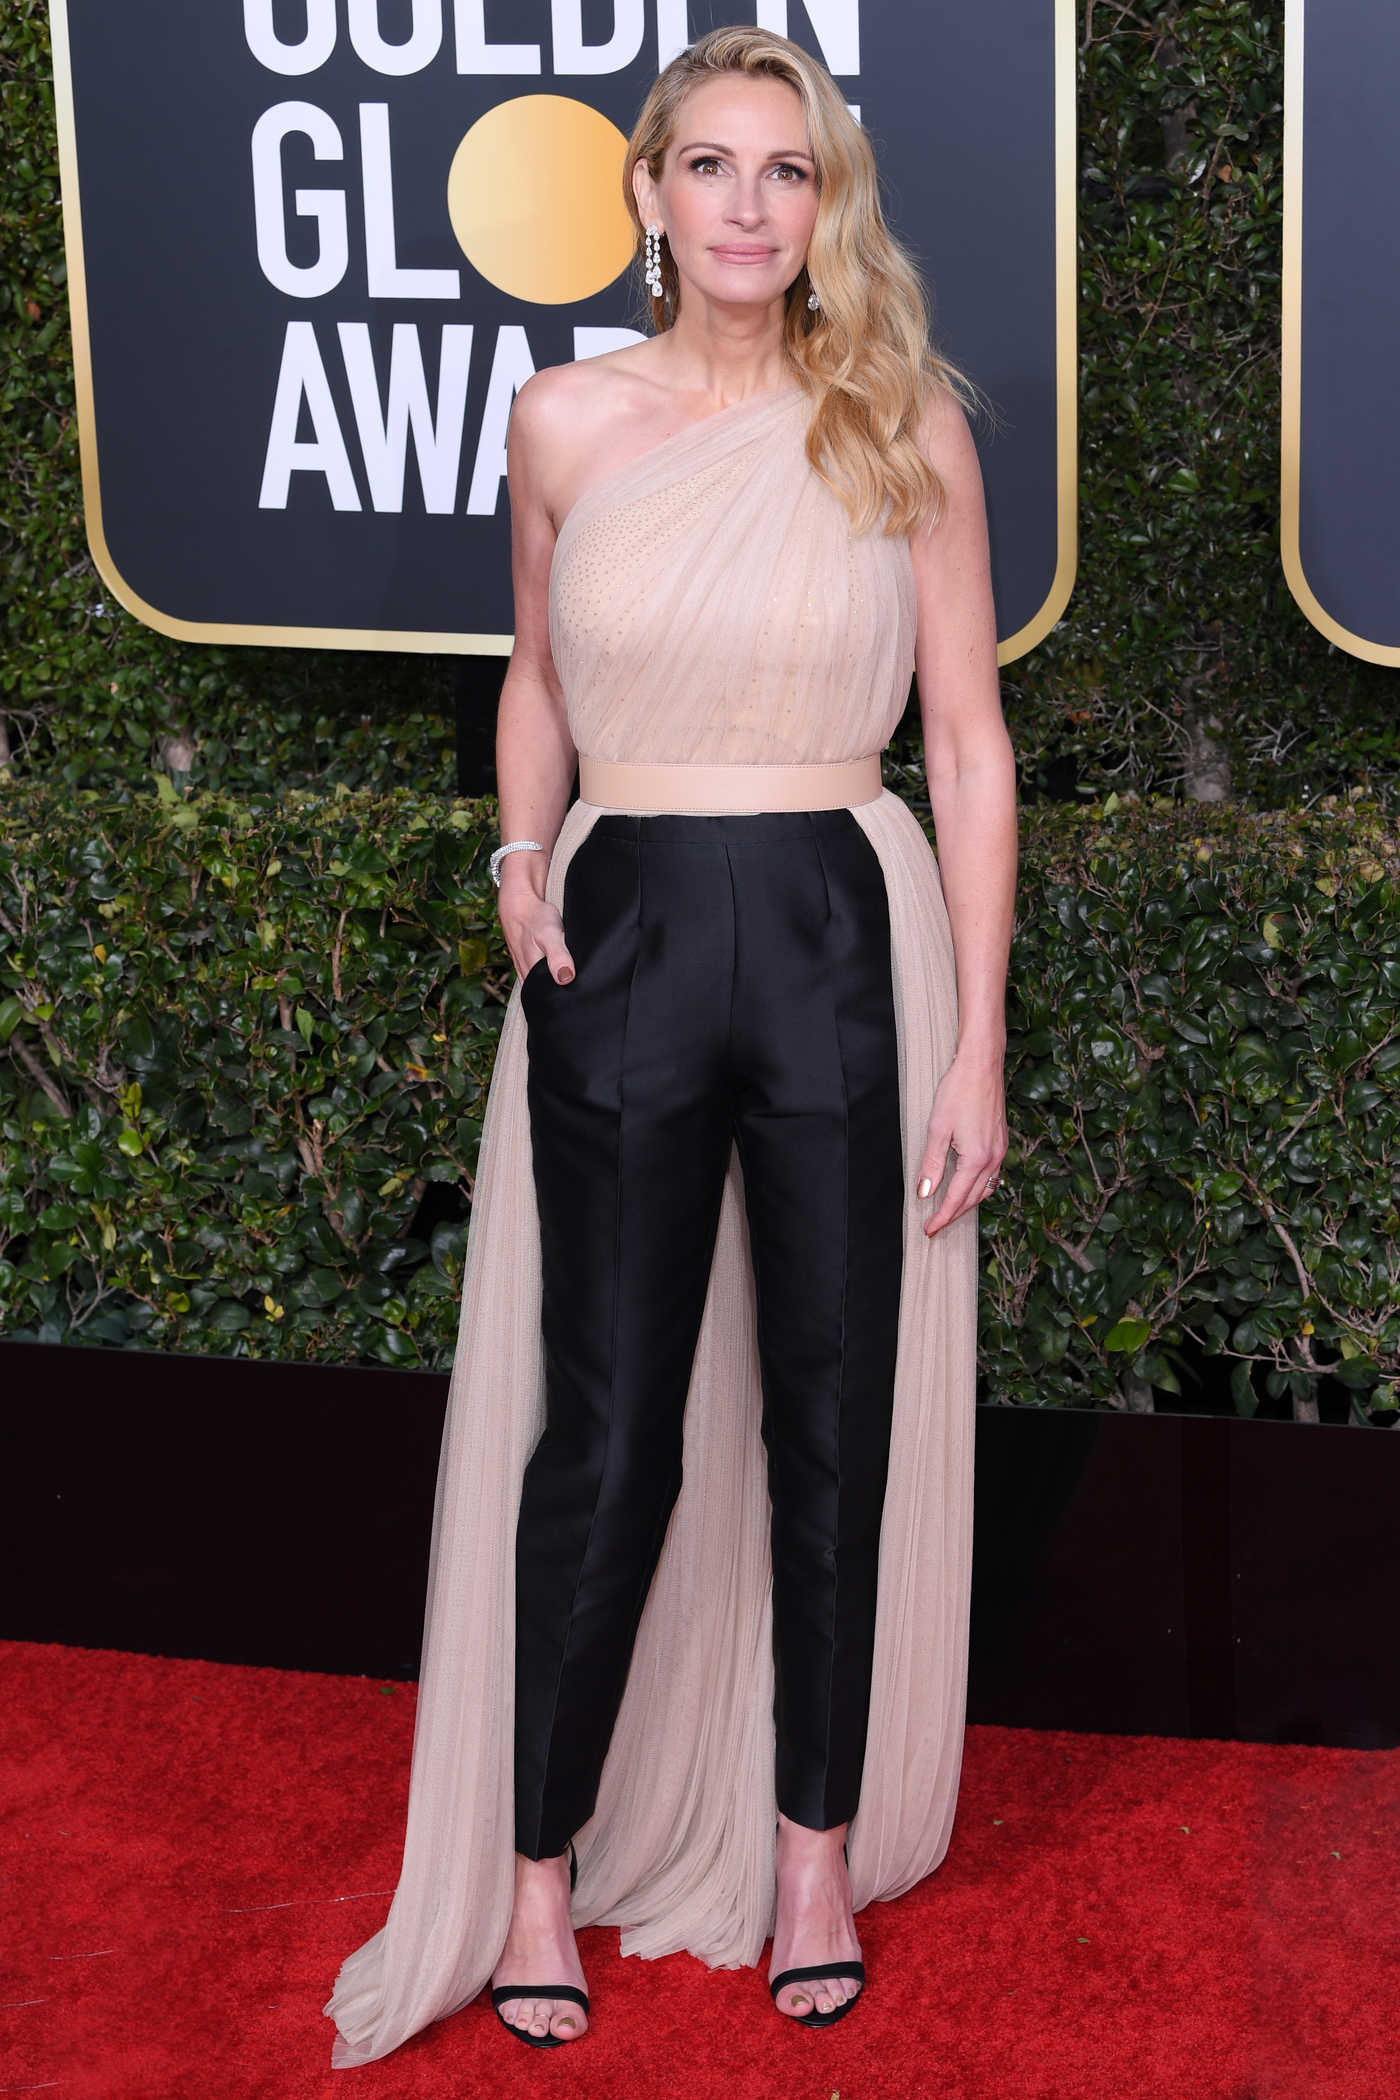 Julia Roberts Attends the 76th Annual Golden Globe Awards in Beverly Hills 01/06/2019